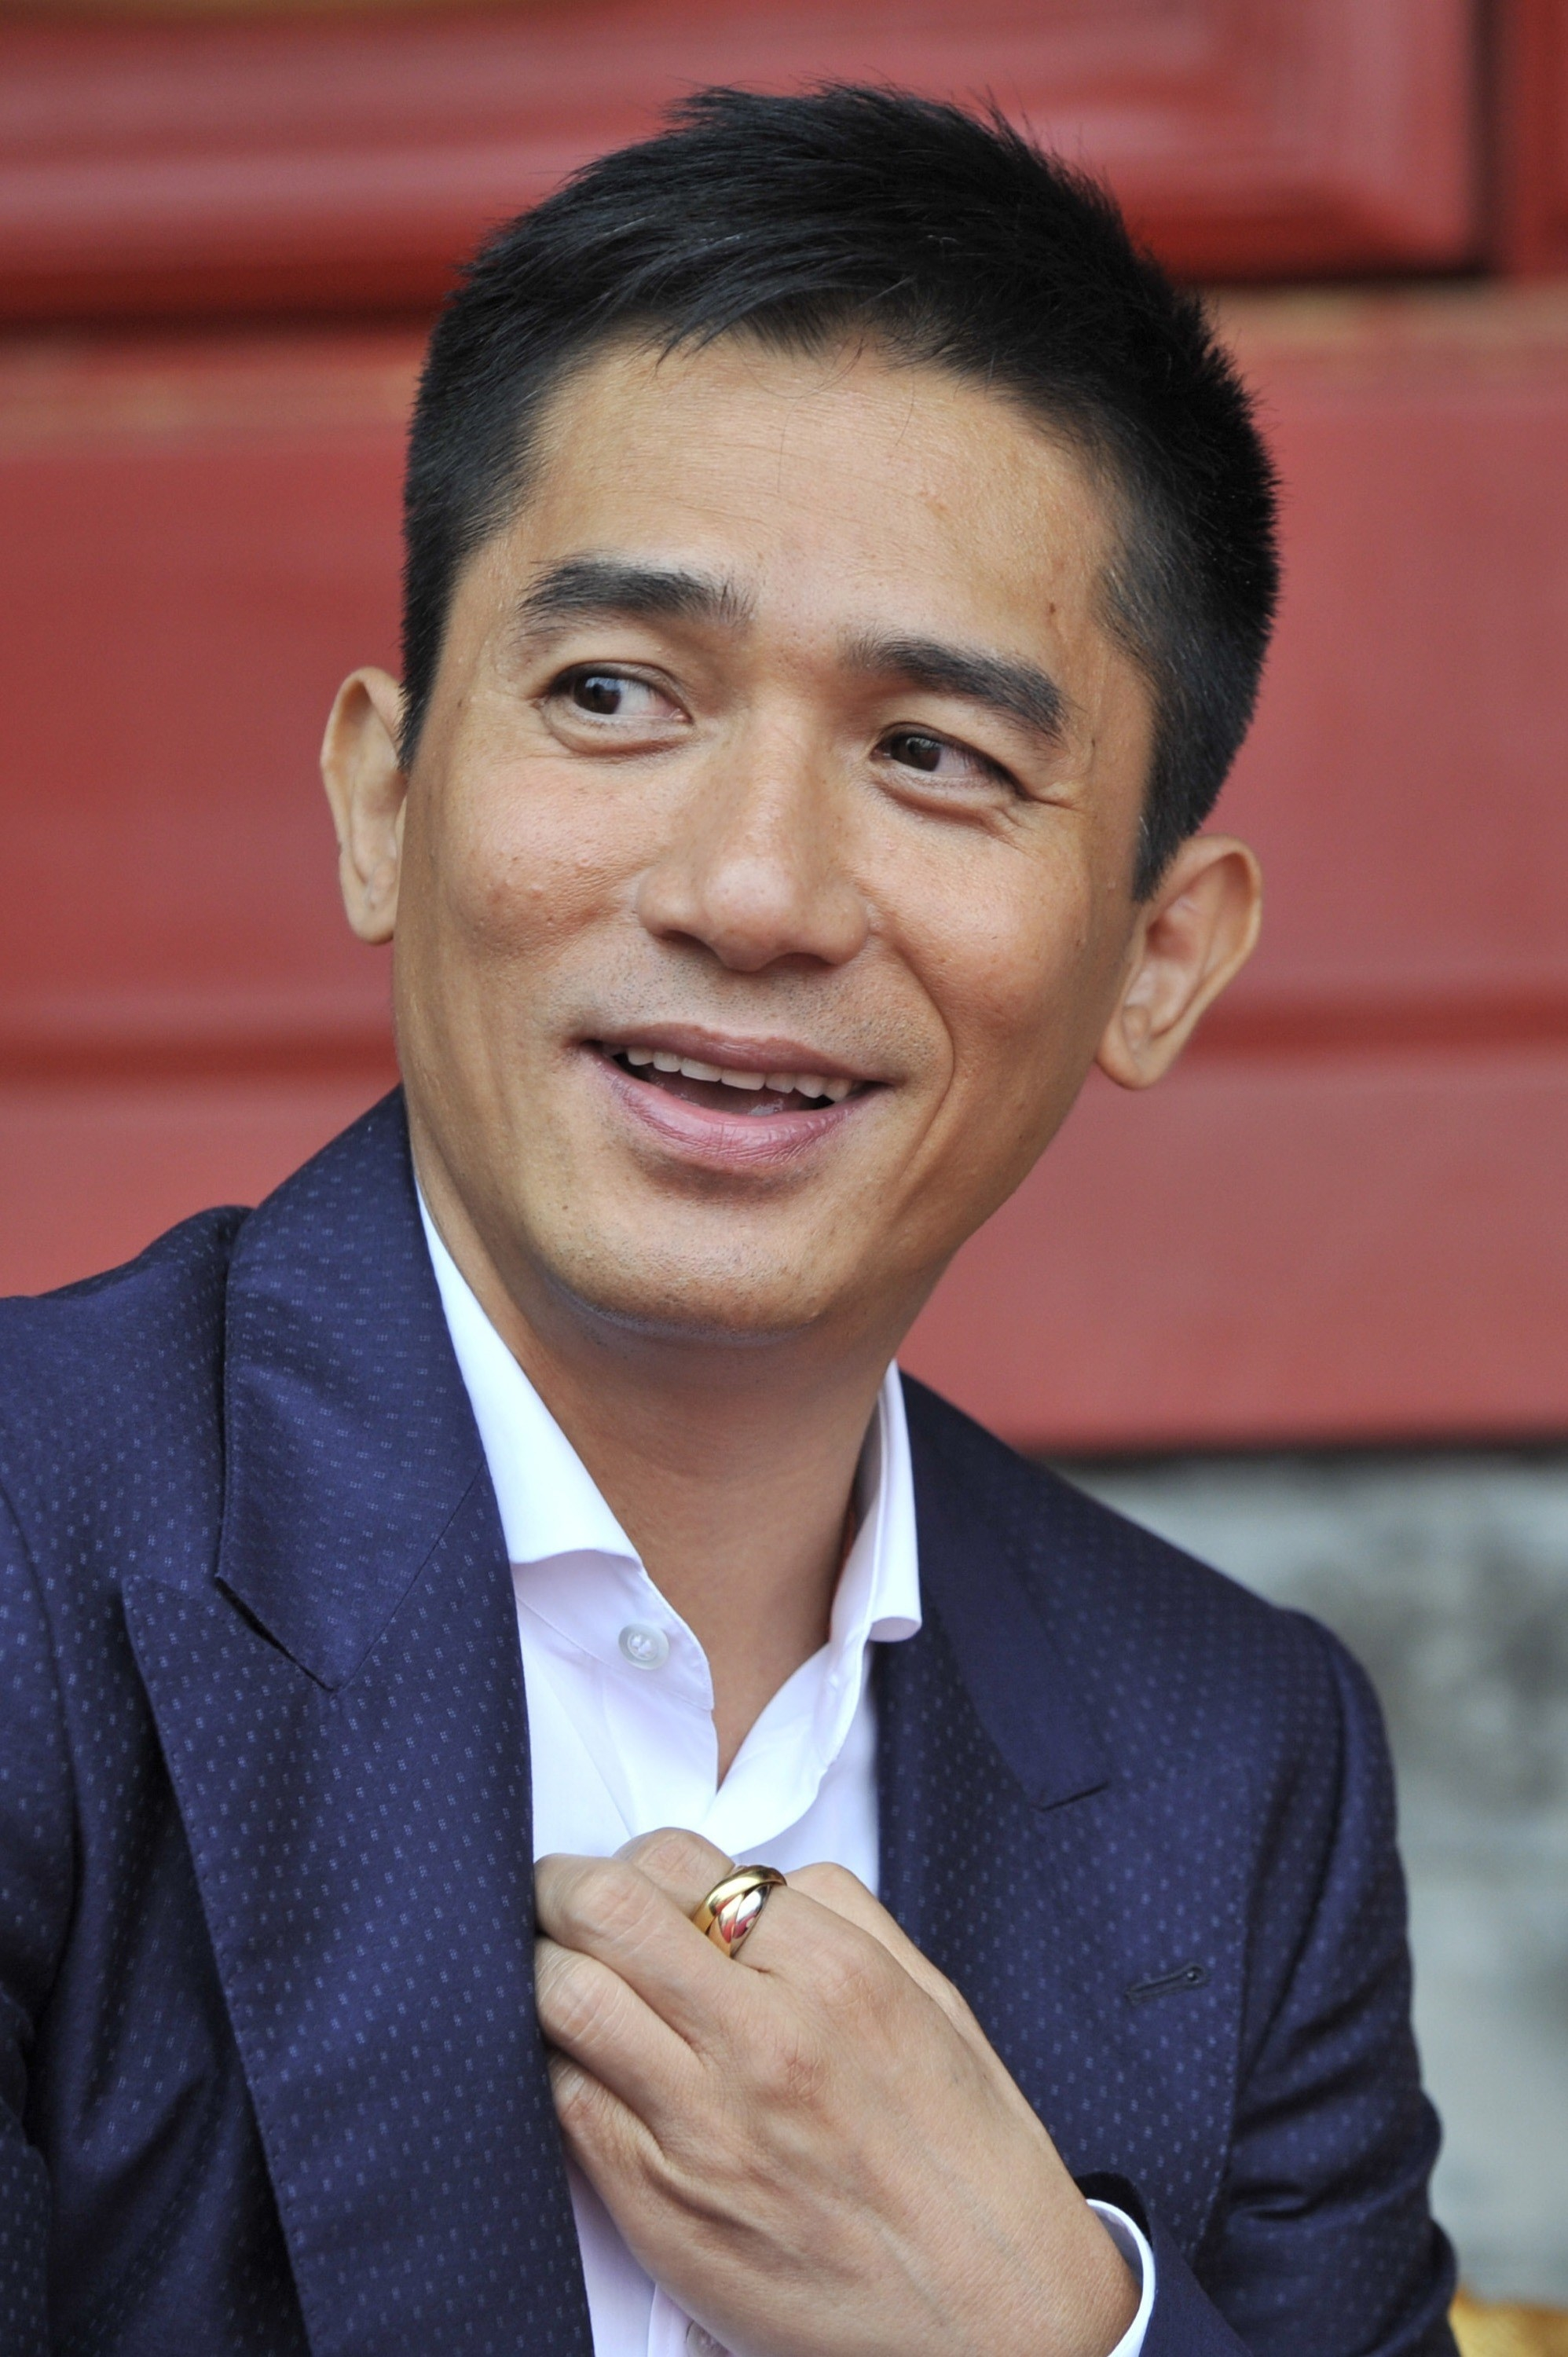 Tony Leung on the red carpet